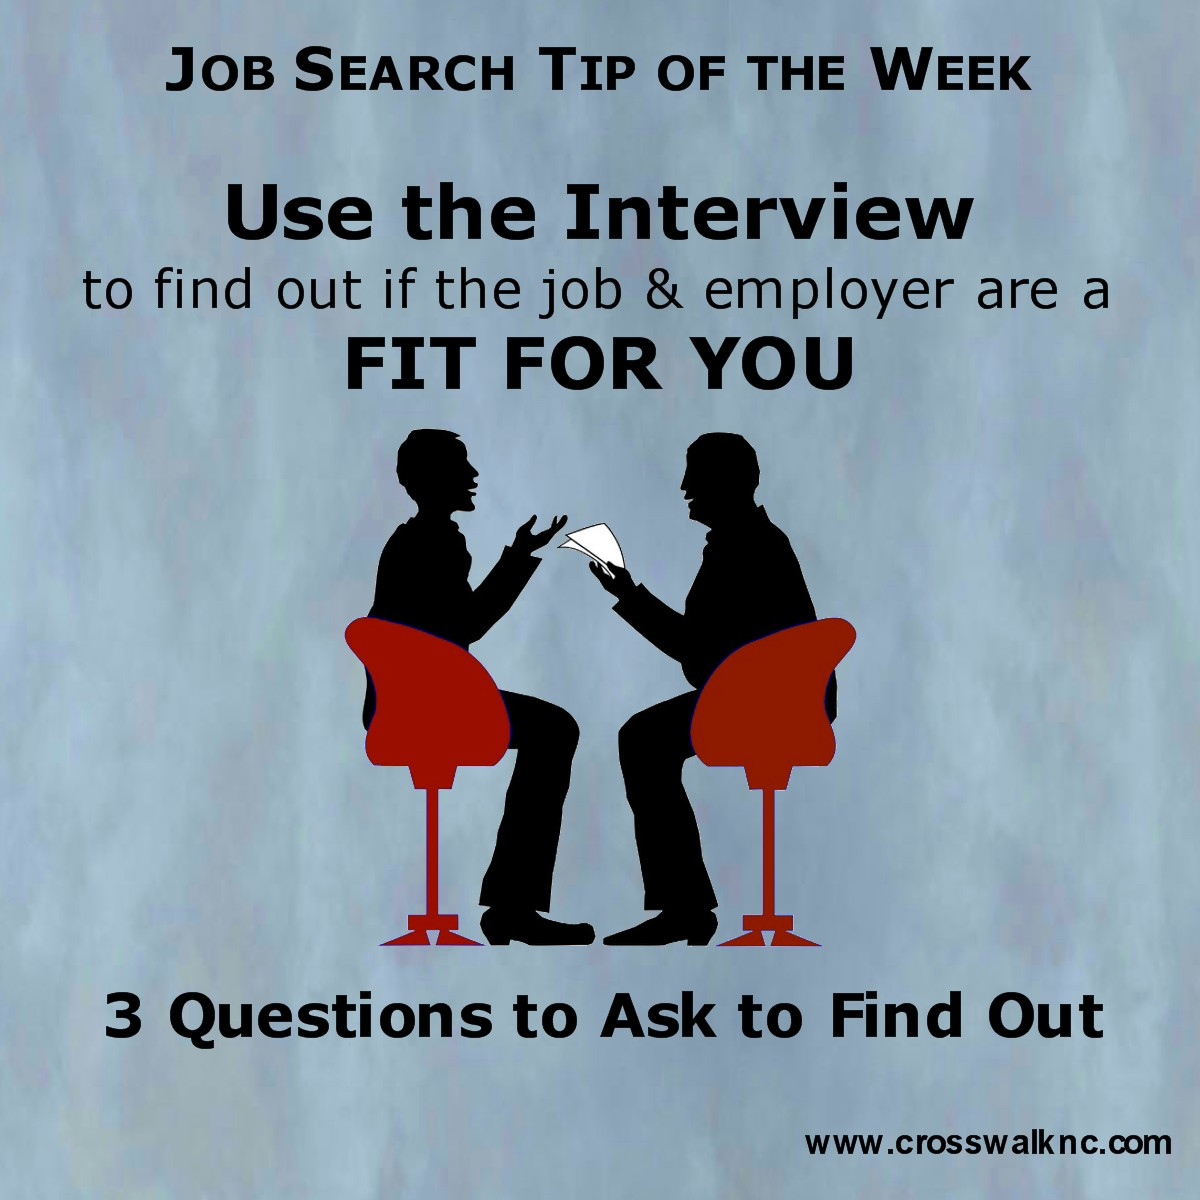 uncategorized as a matter of thought job search tip of the week use the interview to determine if the job department organization are a fit for you